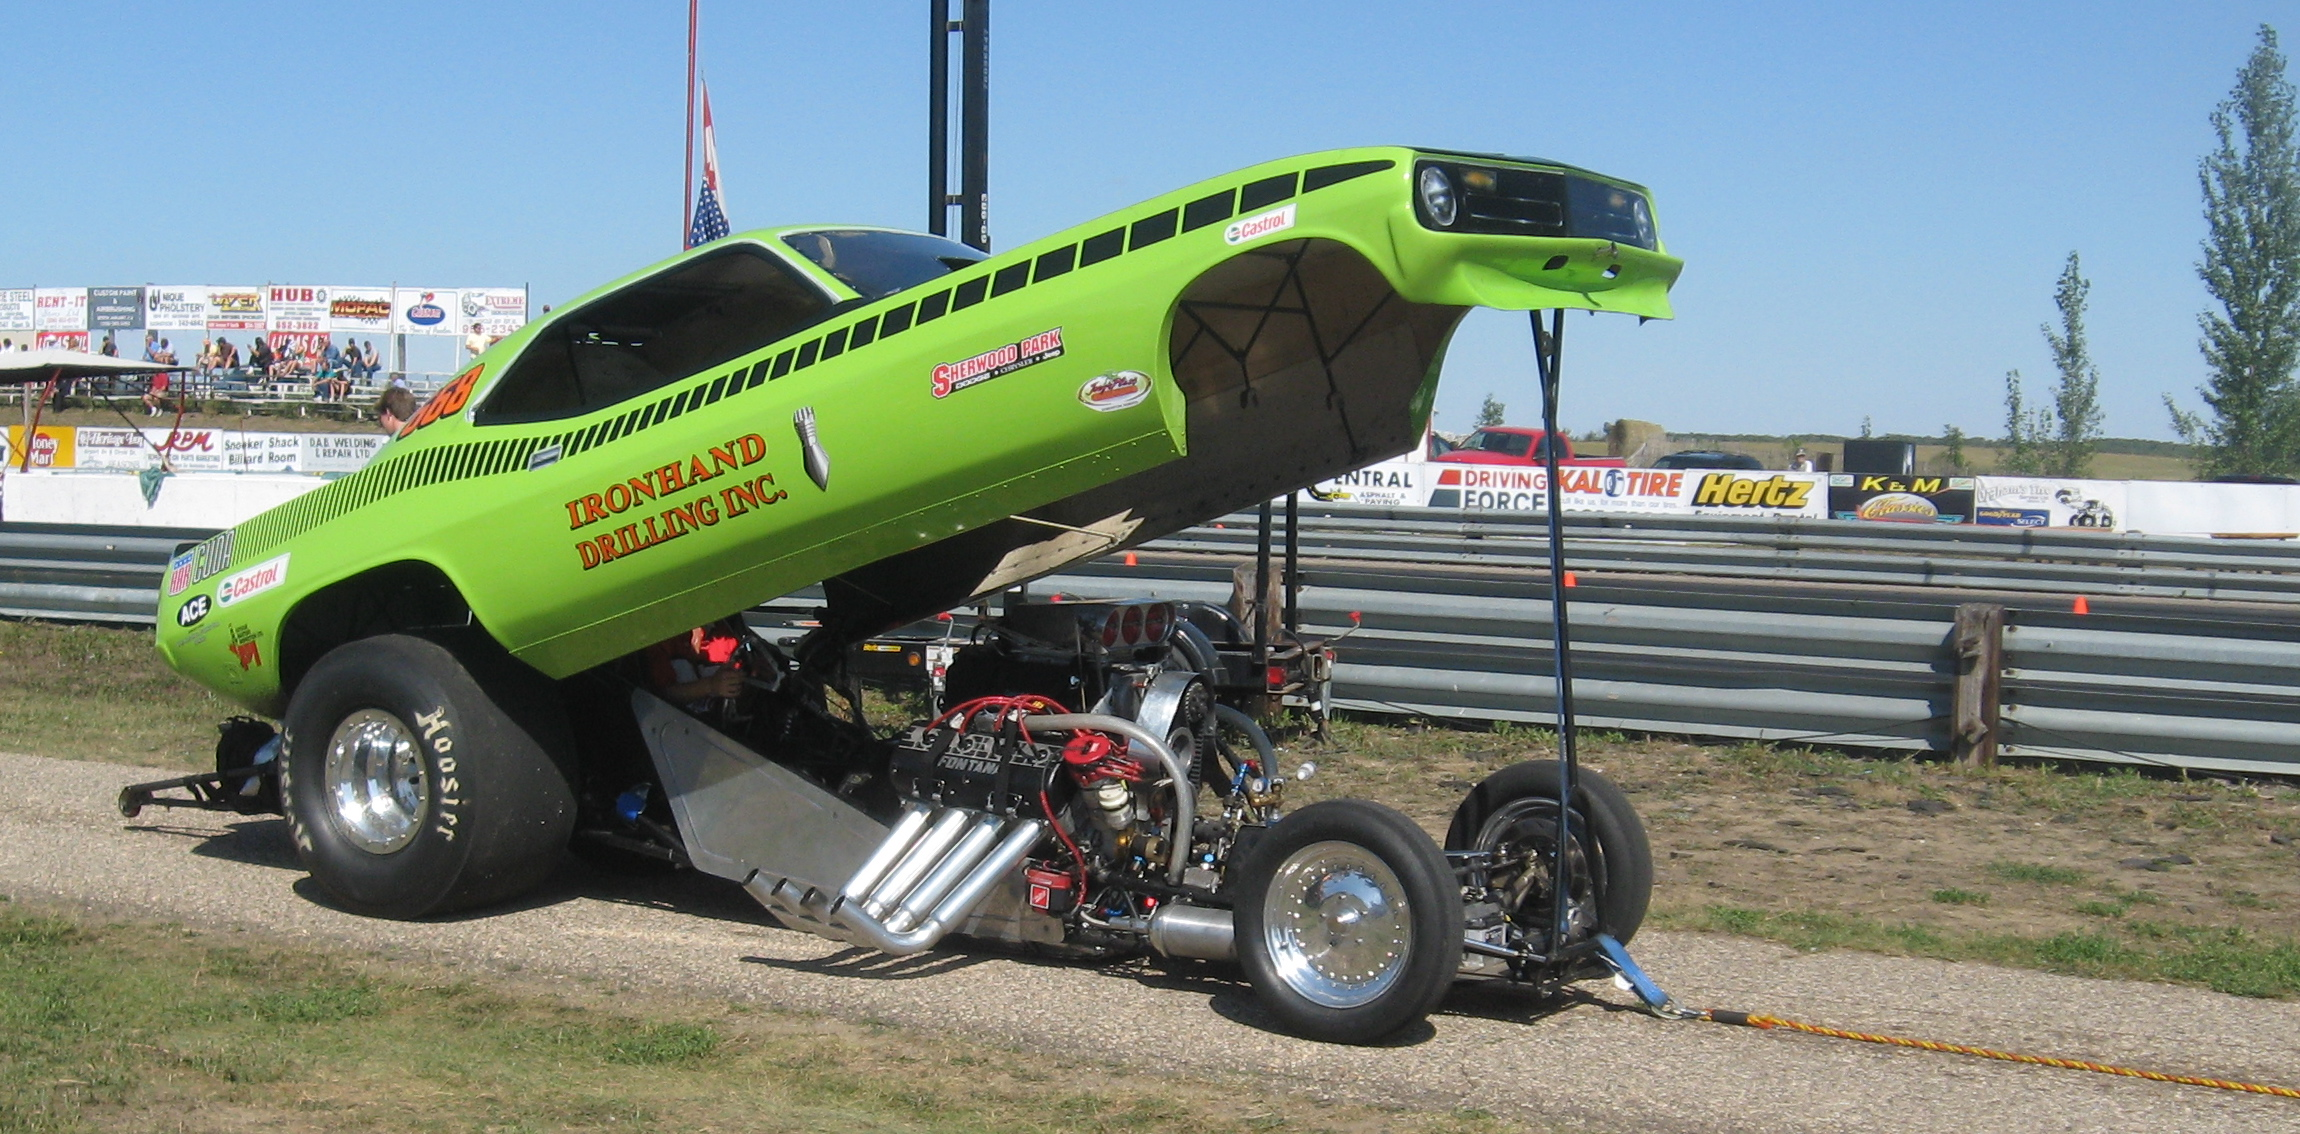 Plymouth cuda photo - 2